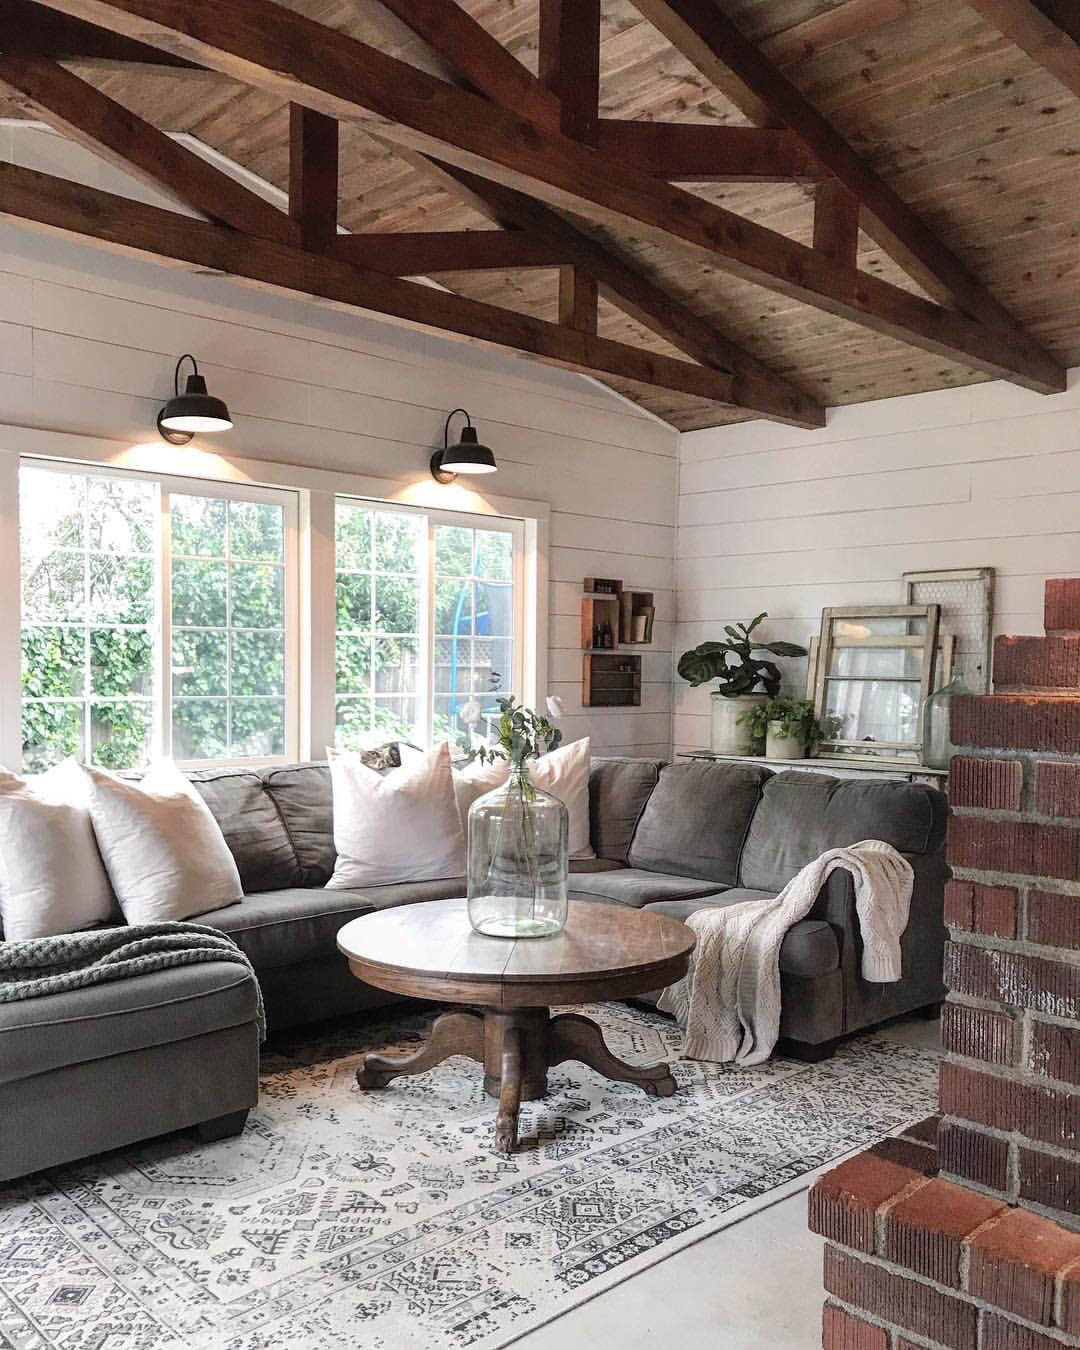 Inspiration For Our Family Room Off The Kitchen So Cozy And Bright Modern Farmhouse Living Room Decor Modern Farmhouse Living Room Farm House Living Room